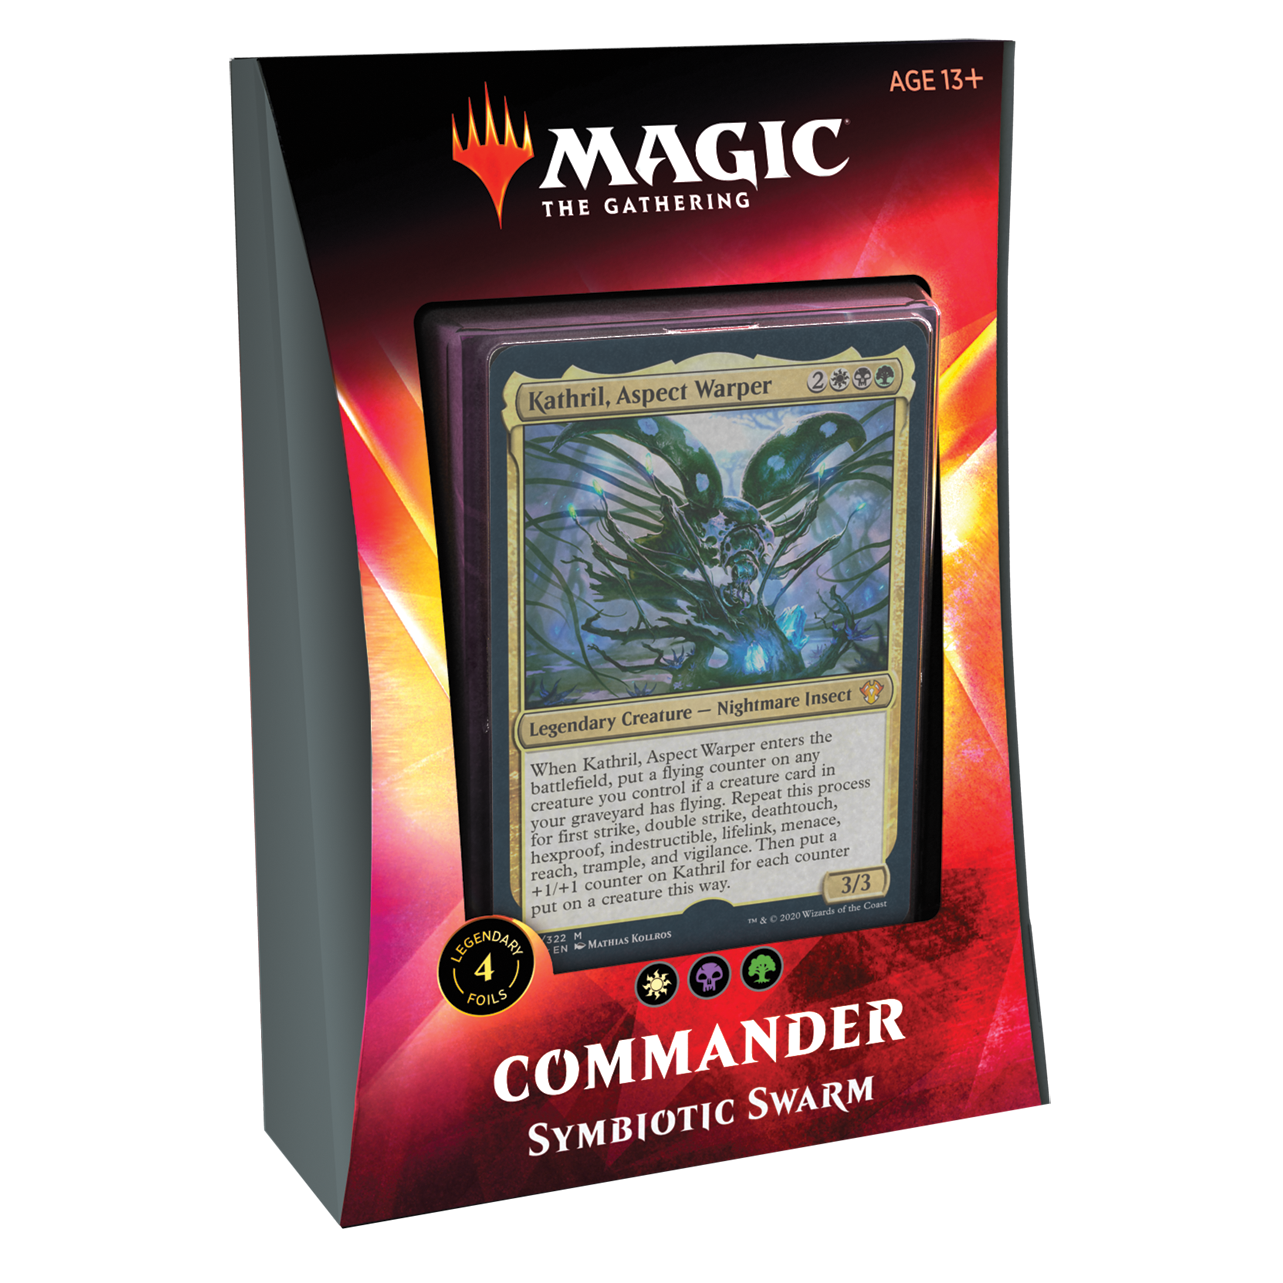 MAGIC THE GATHERING COMMANDER 2020 IKORIA SYMBIOTIC SWARM